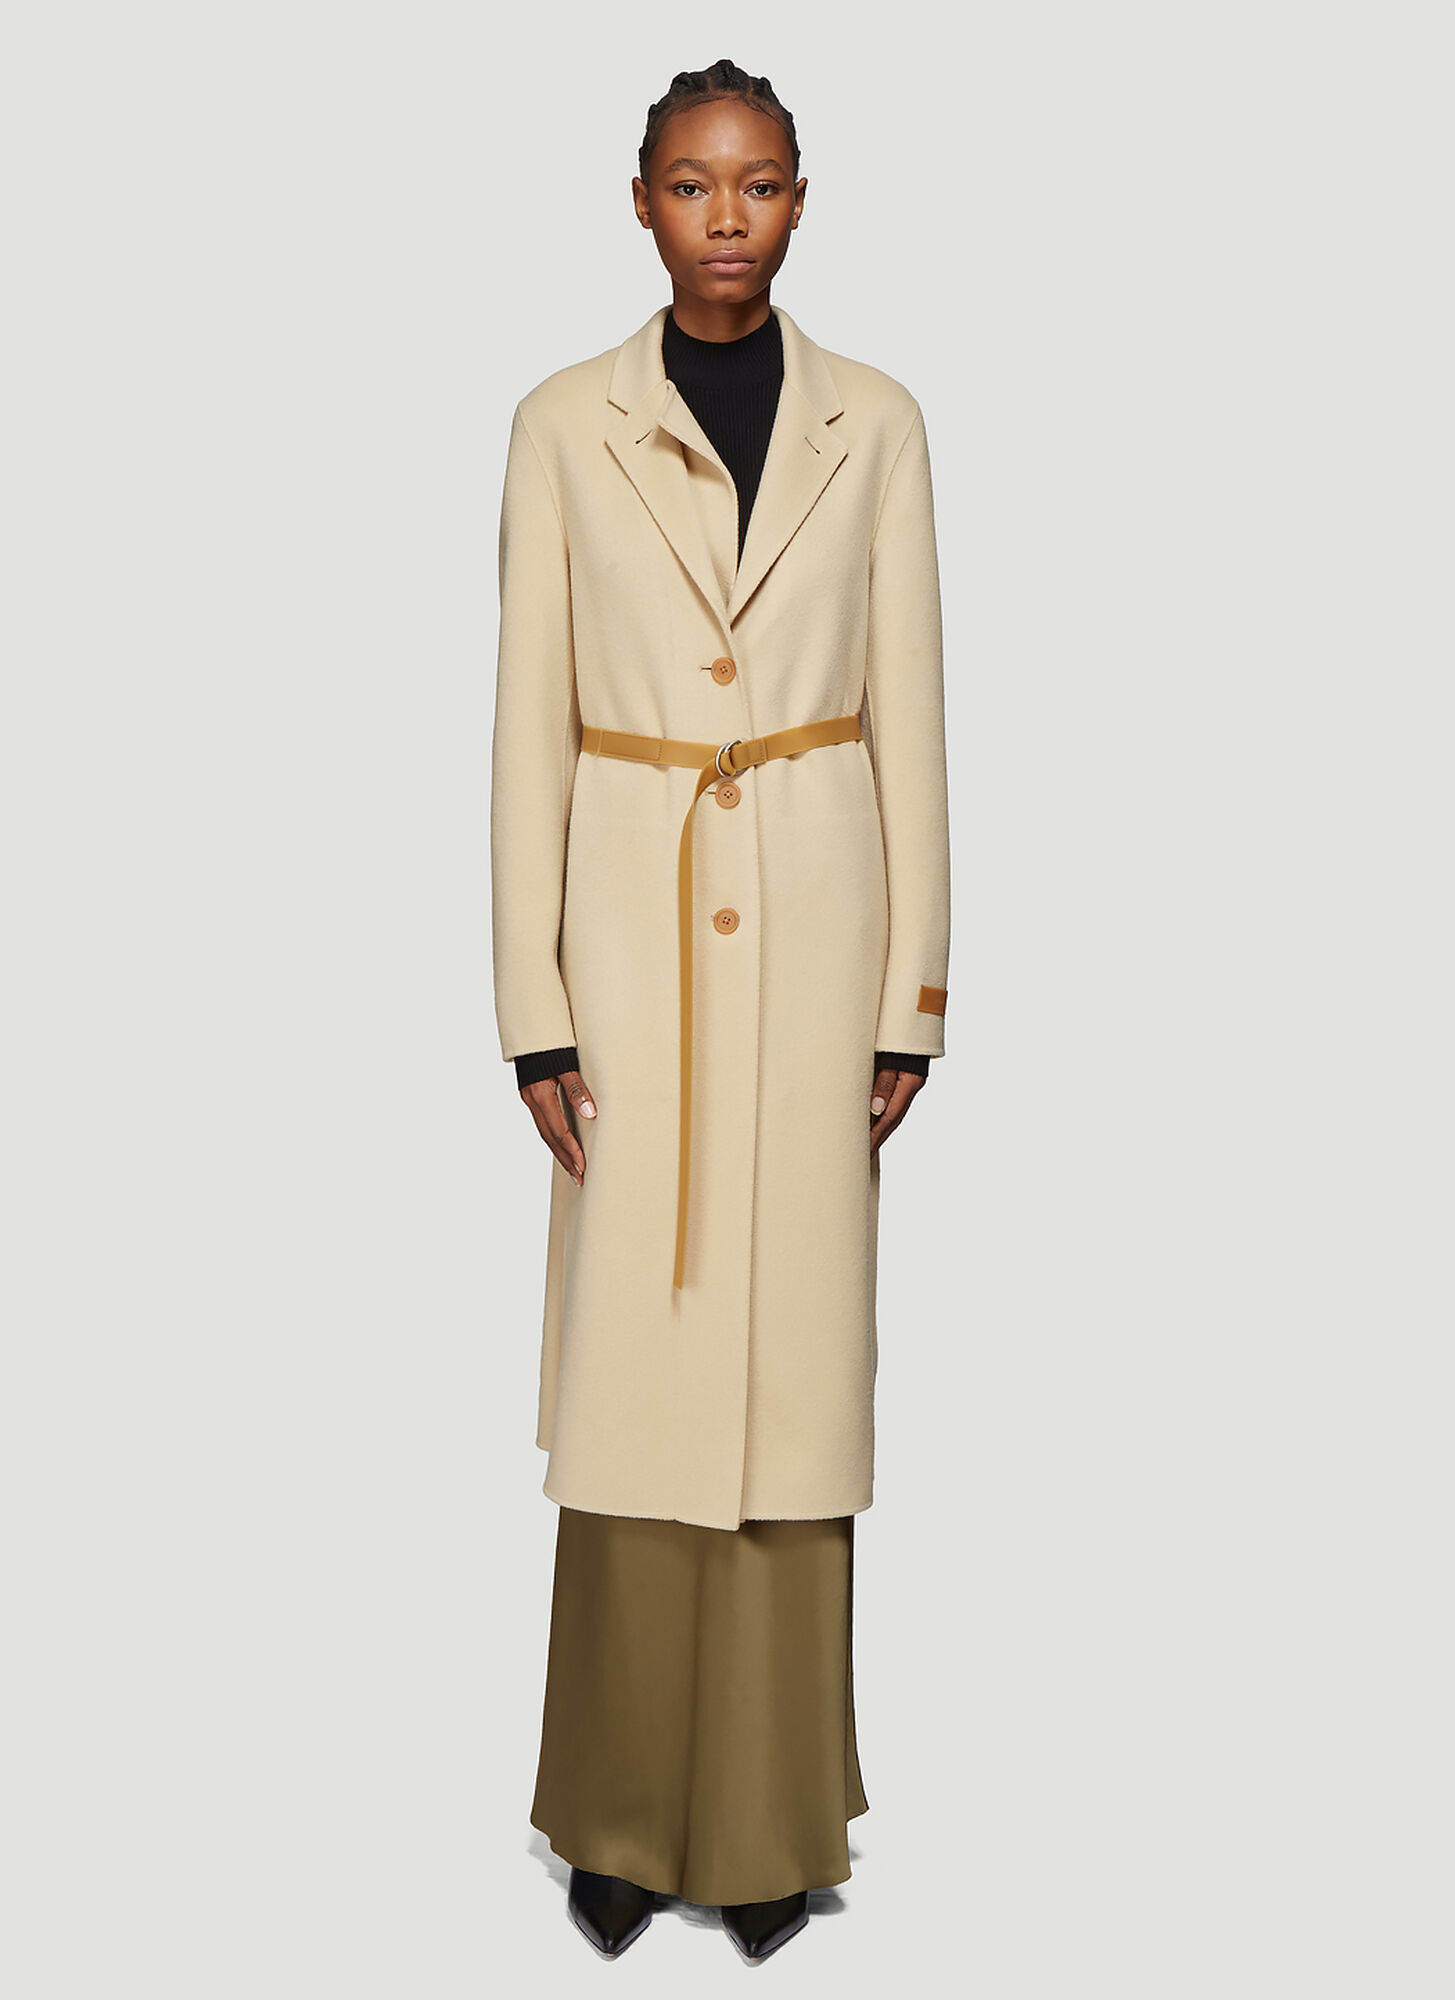 Helmut Lang Double Lapel Coat in Beige